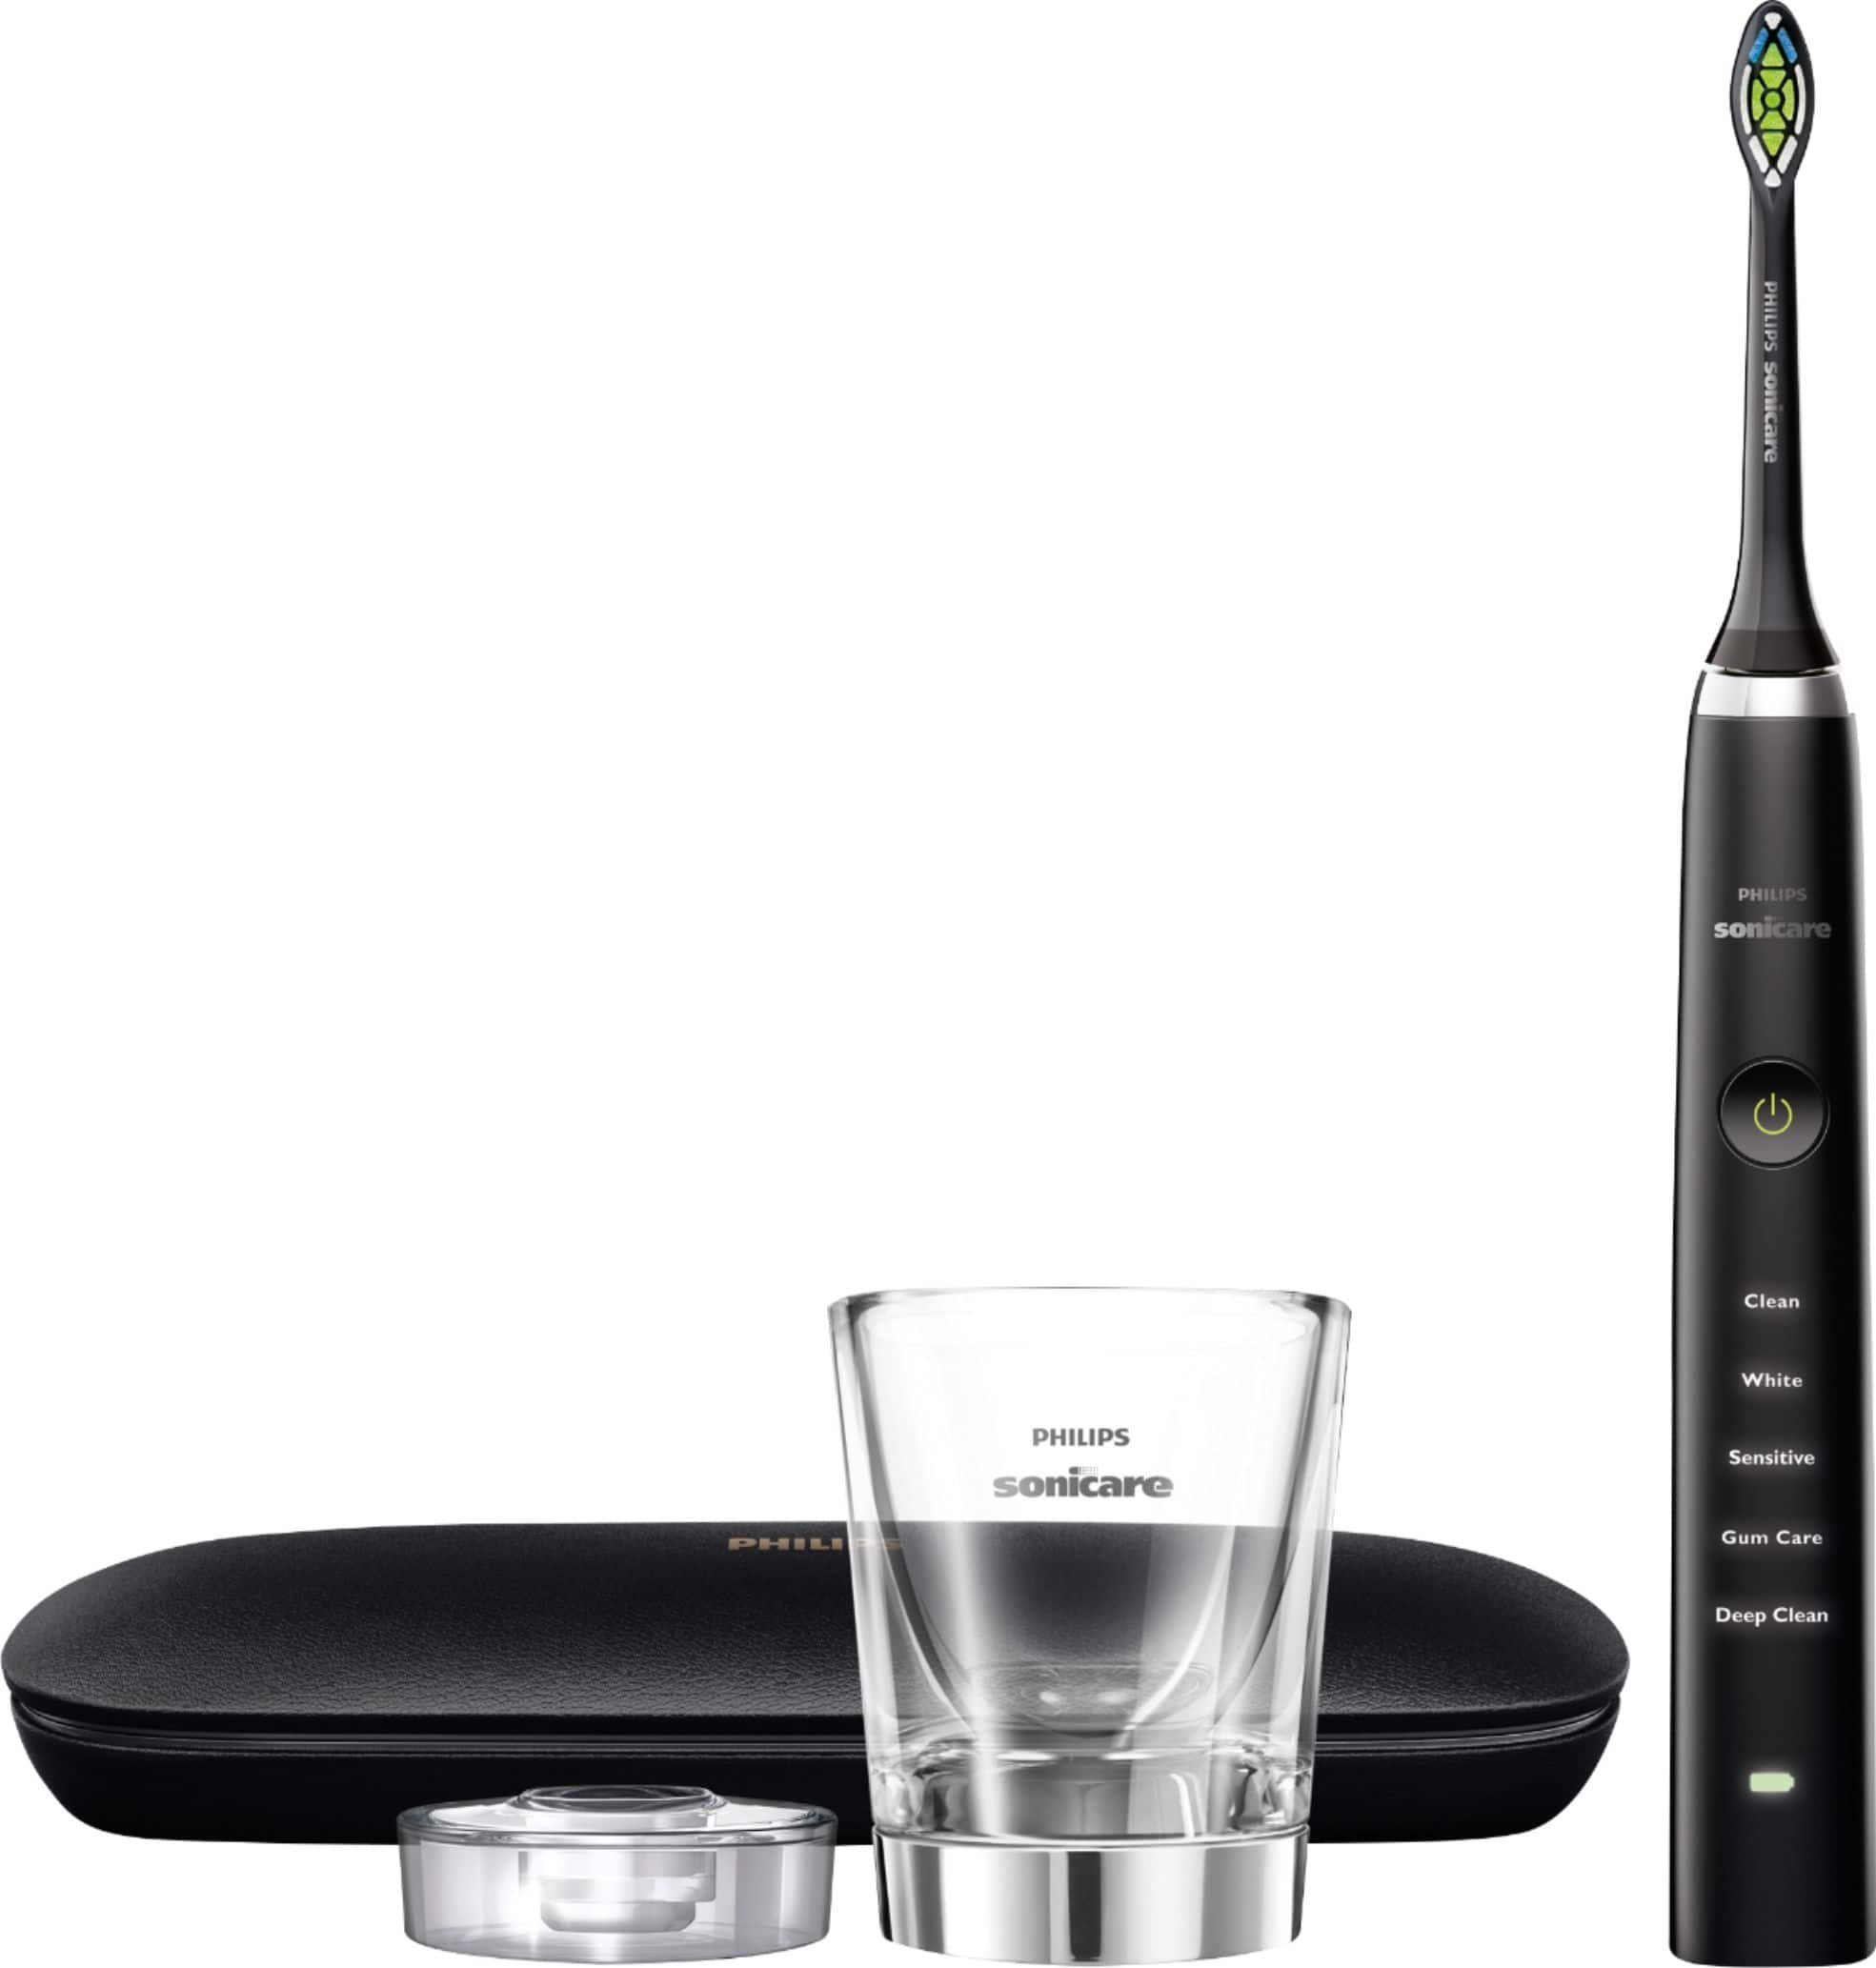 Philips Sonicare DiamondClean Classic Rechargeable Electric Toothbrush - 79.95 (after $20 coupon) + free shipping $79.95